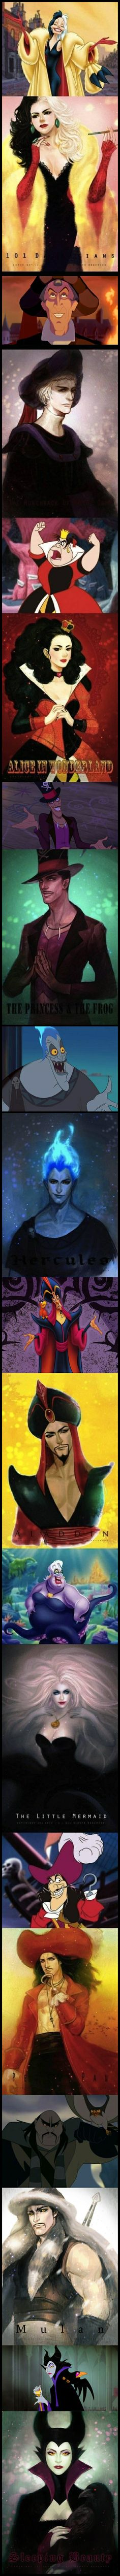 'What if Disney villains were beautiful?'